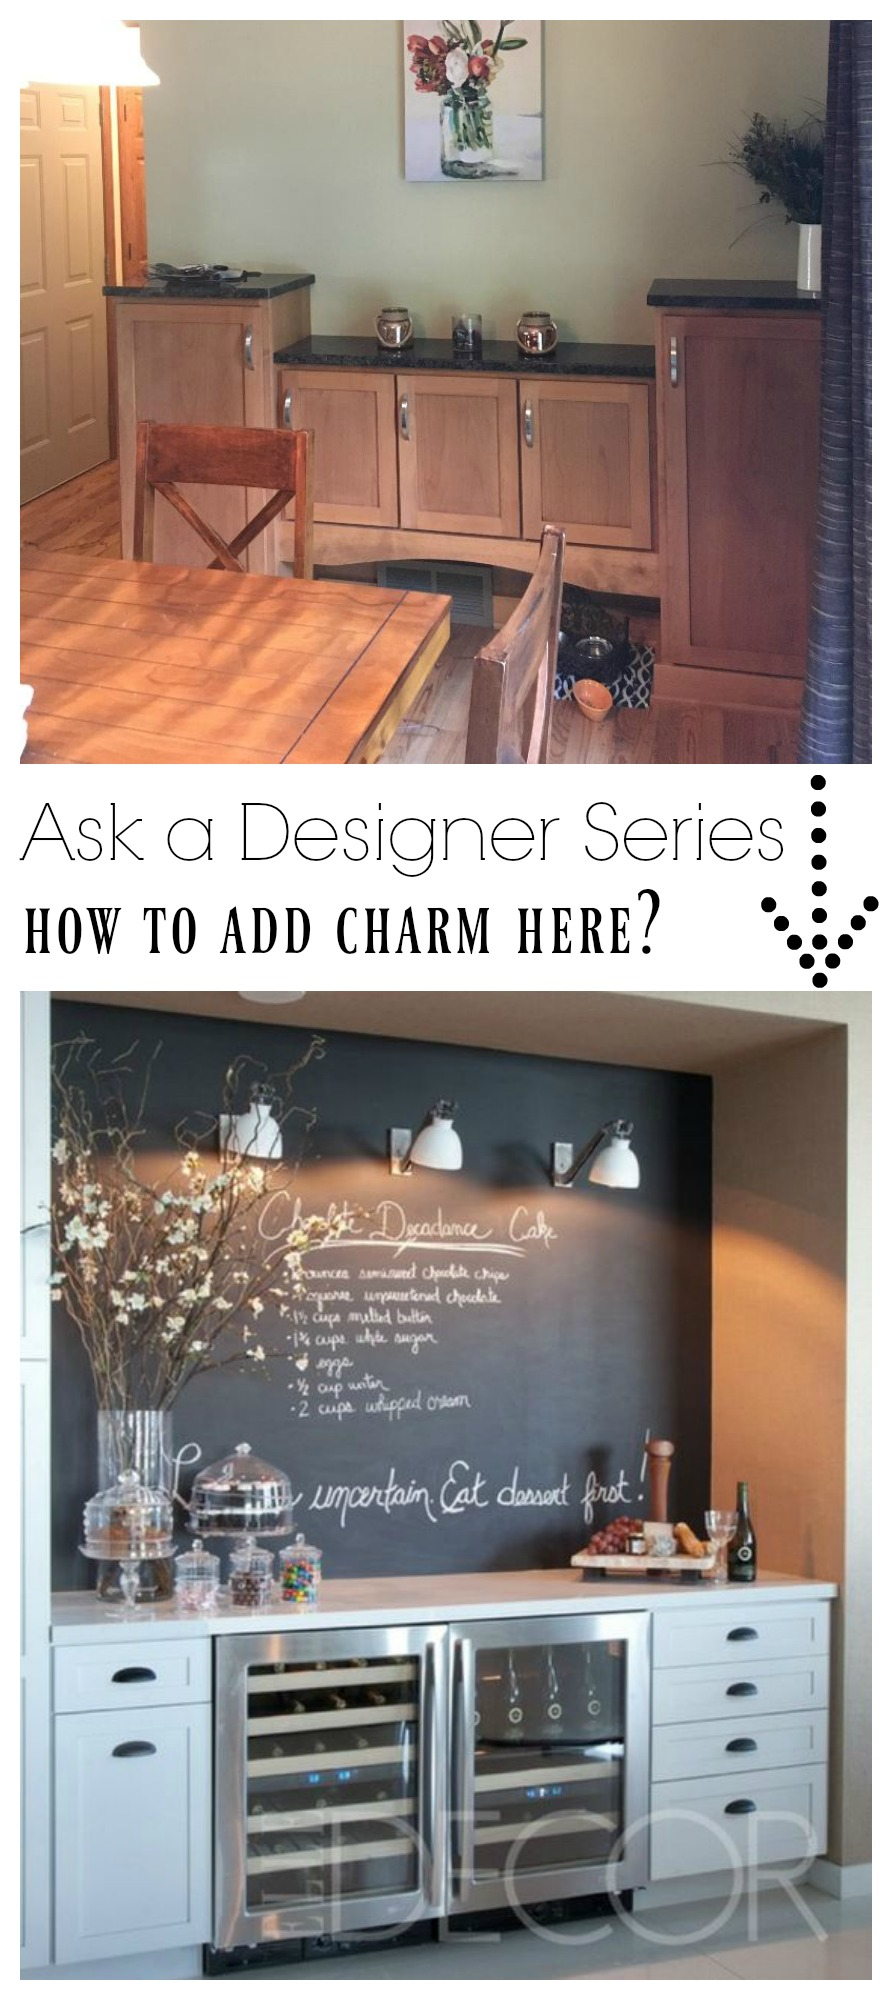 Ask a Designer Series- How to add charm to dining space?